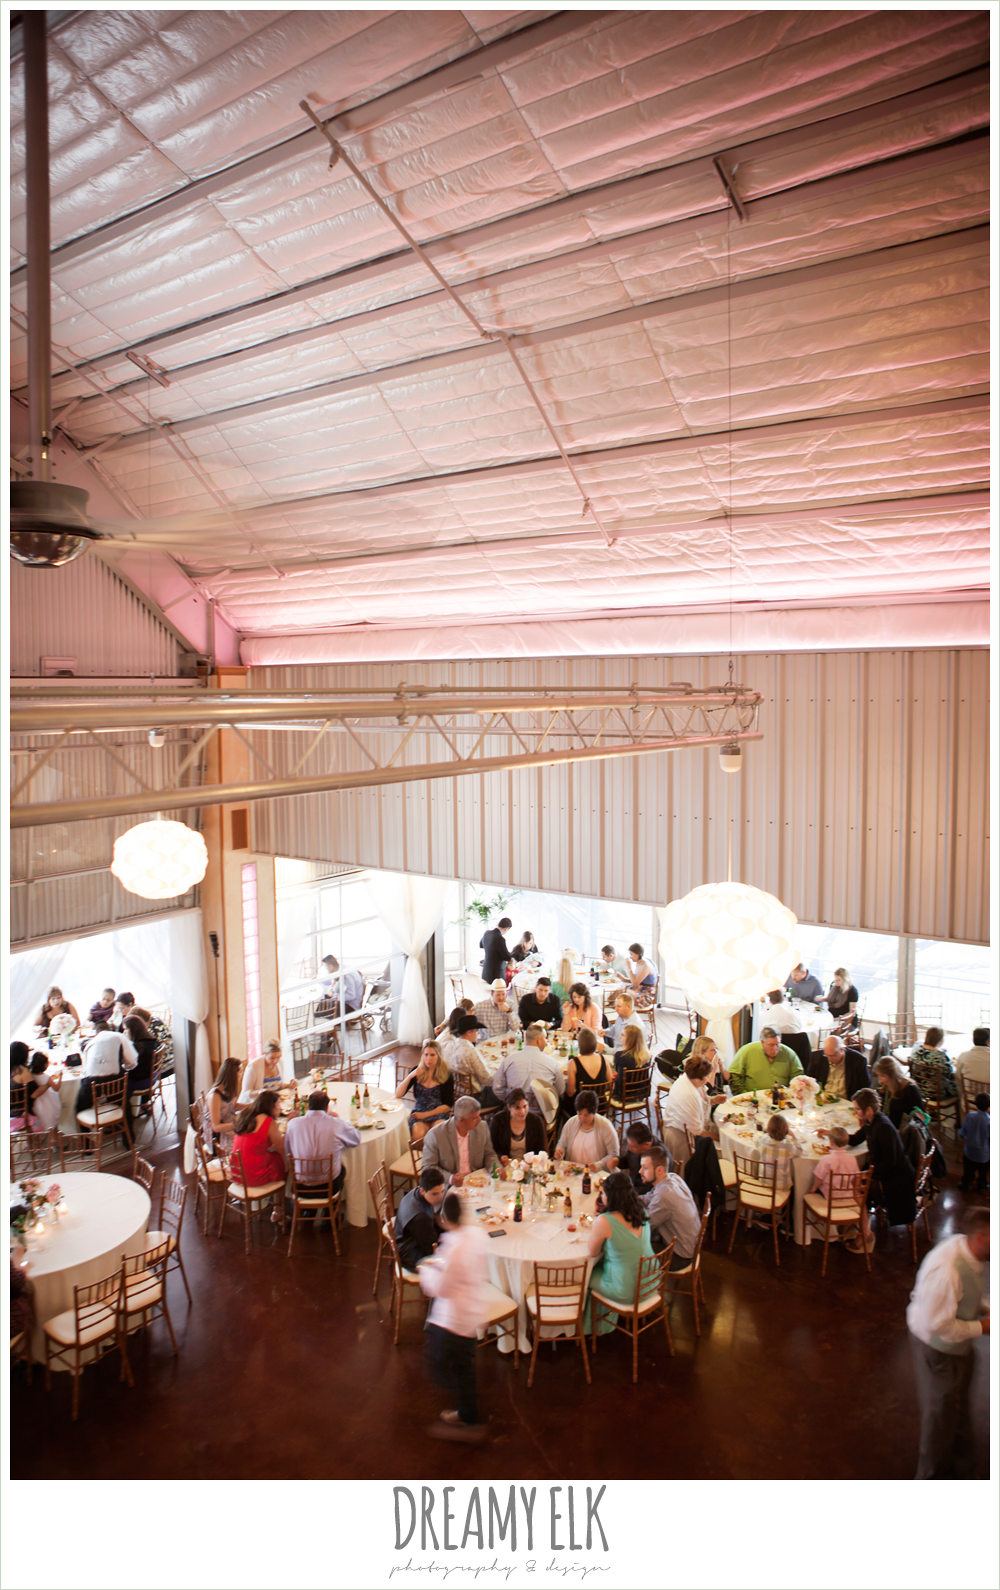 indoor wedding reception, terradorna wedding venue, austin spring wedding {dreamy elk photography and design}